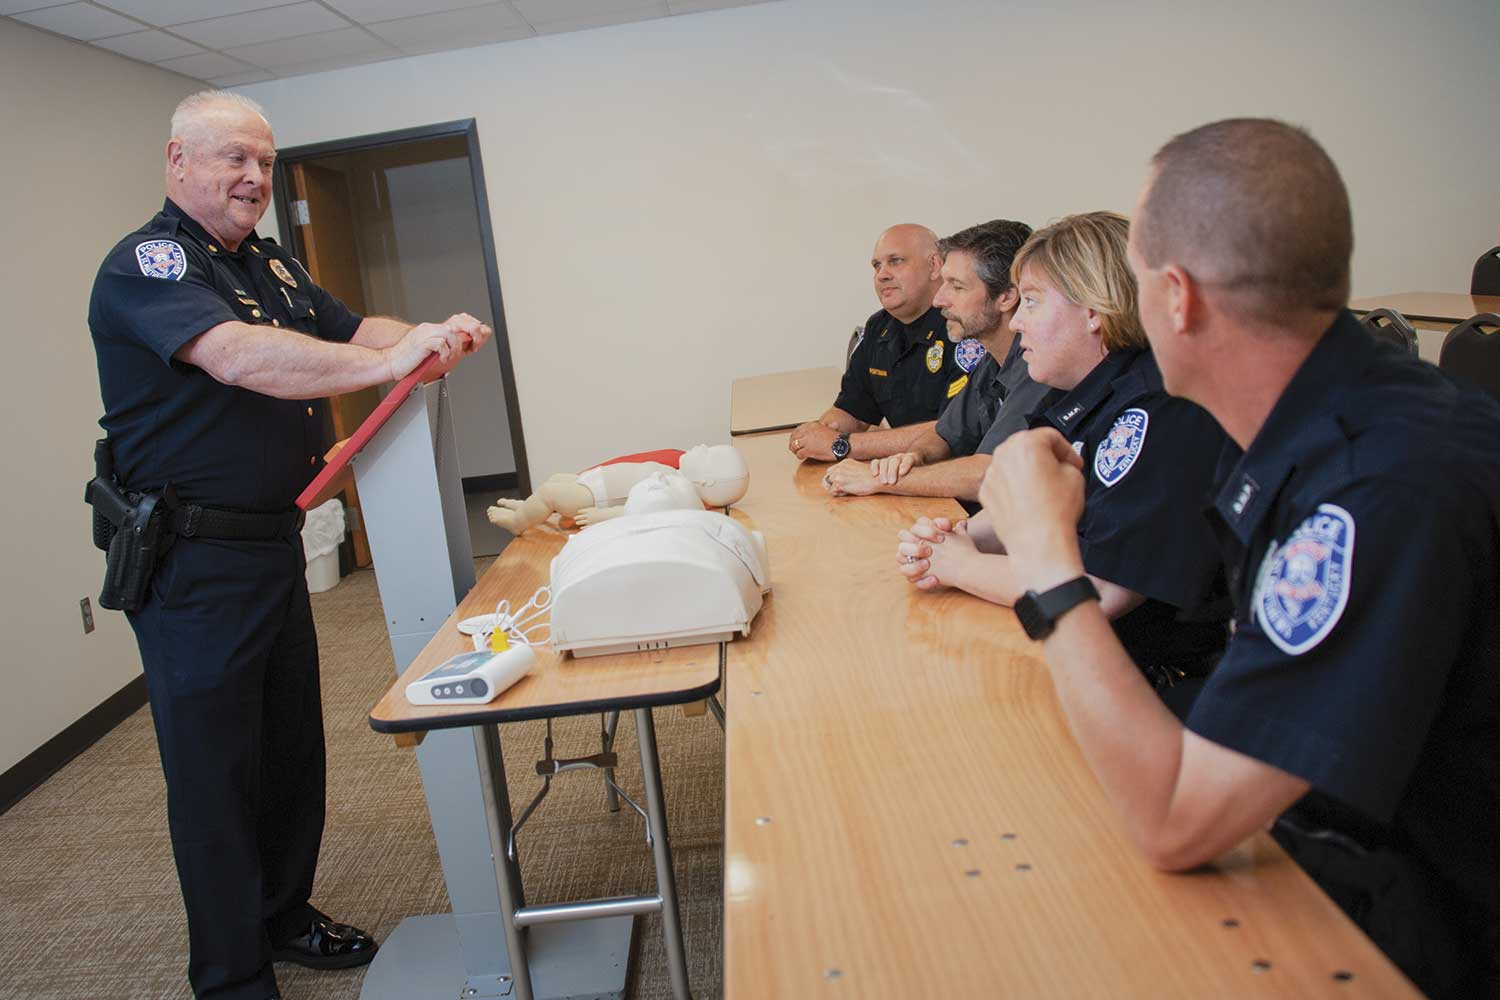 Assistant Chief and Operations Bureau Commander Tony Cobaugh instructs agency members on CPR. Under his supervision, the department has incorporated several in-house training components to enhance what officers receive at the Kentucky Department of Criminal Justice Training. (Photo by Jim Robertson)